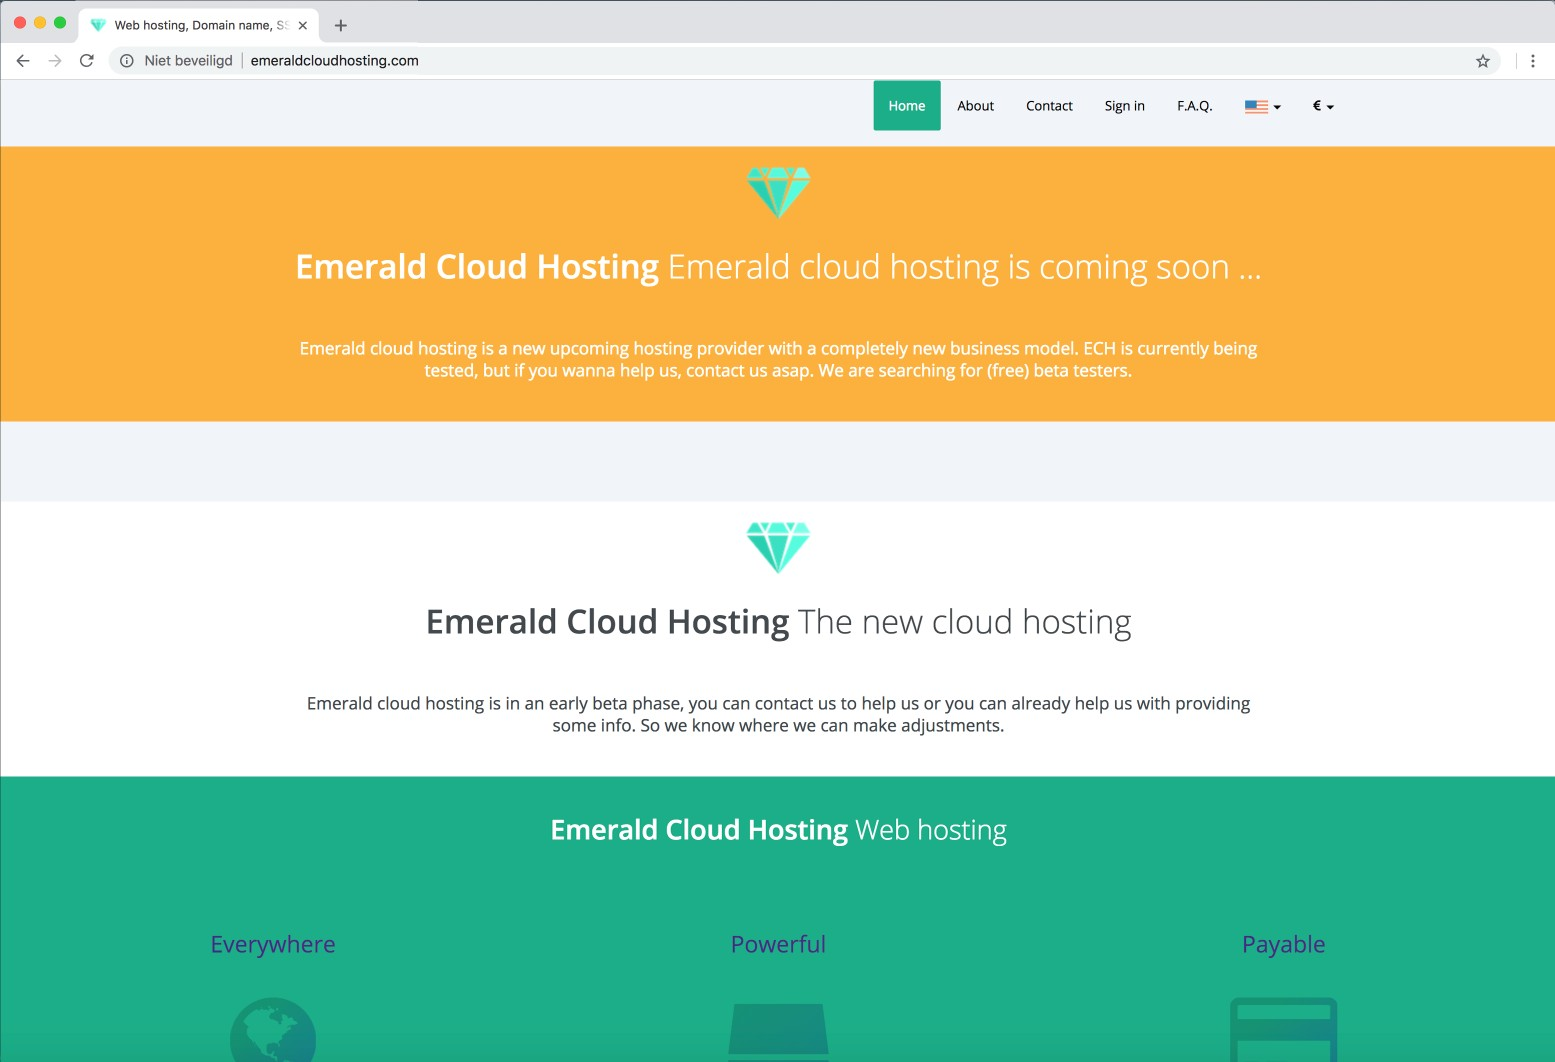 Emerald Cloud Hosting